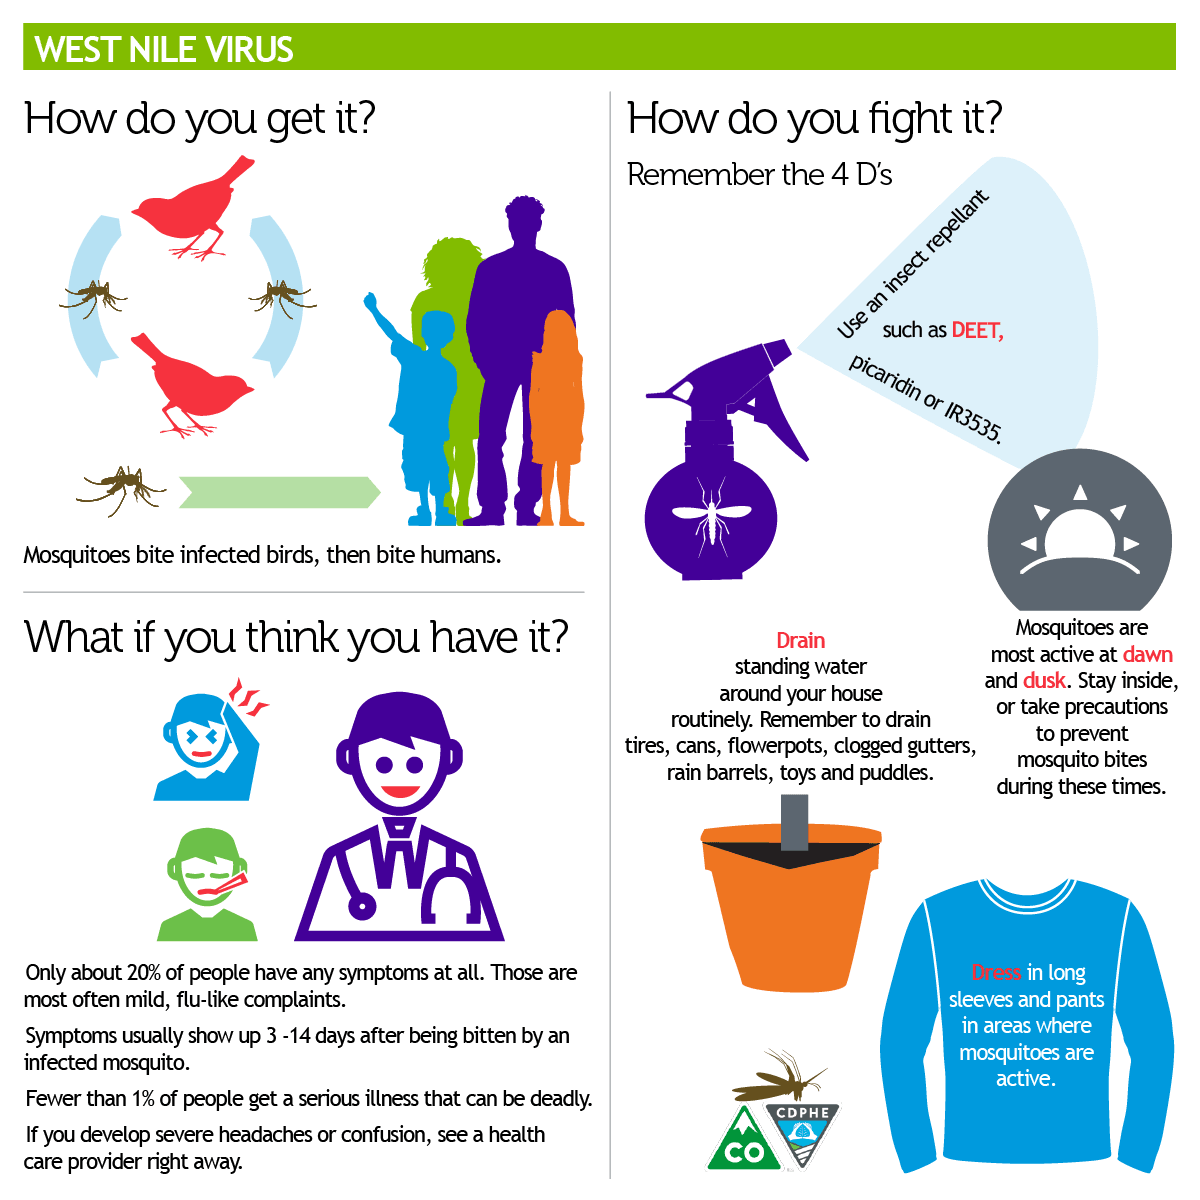 CDPHE WNV Infographic.png